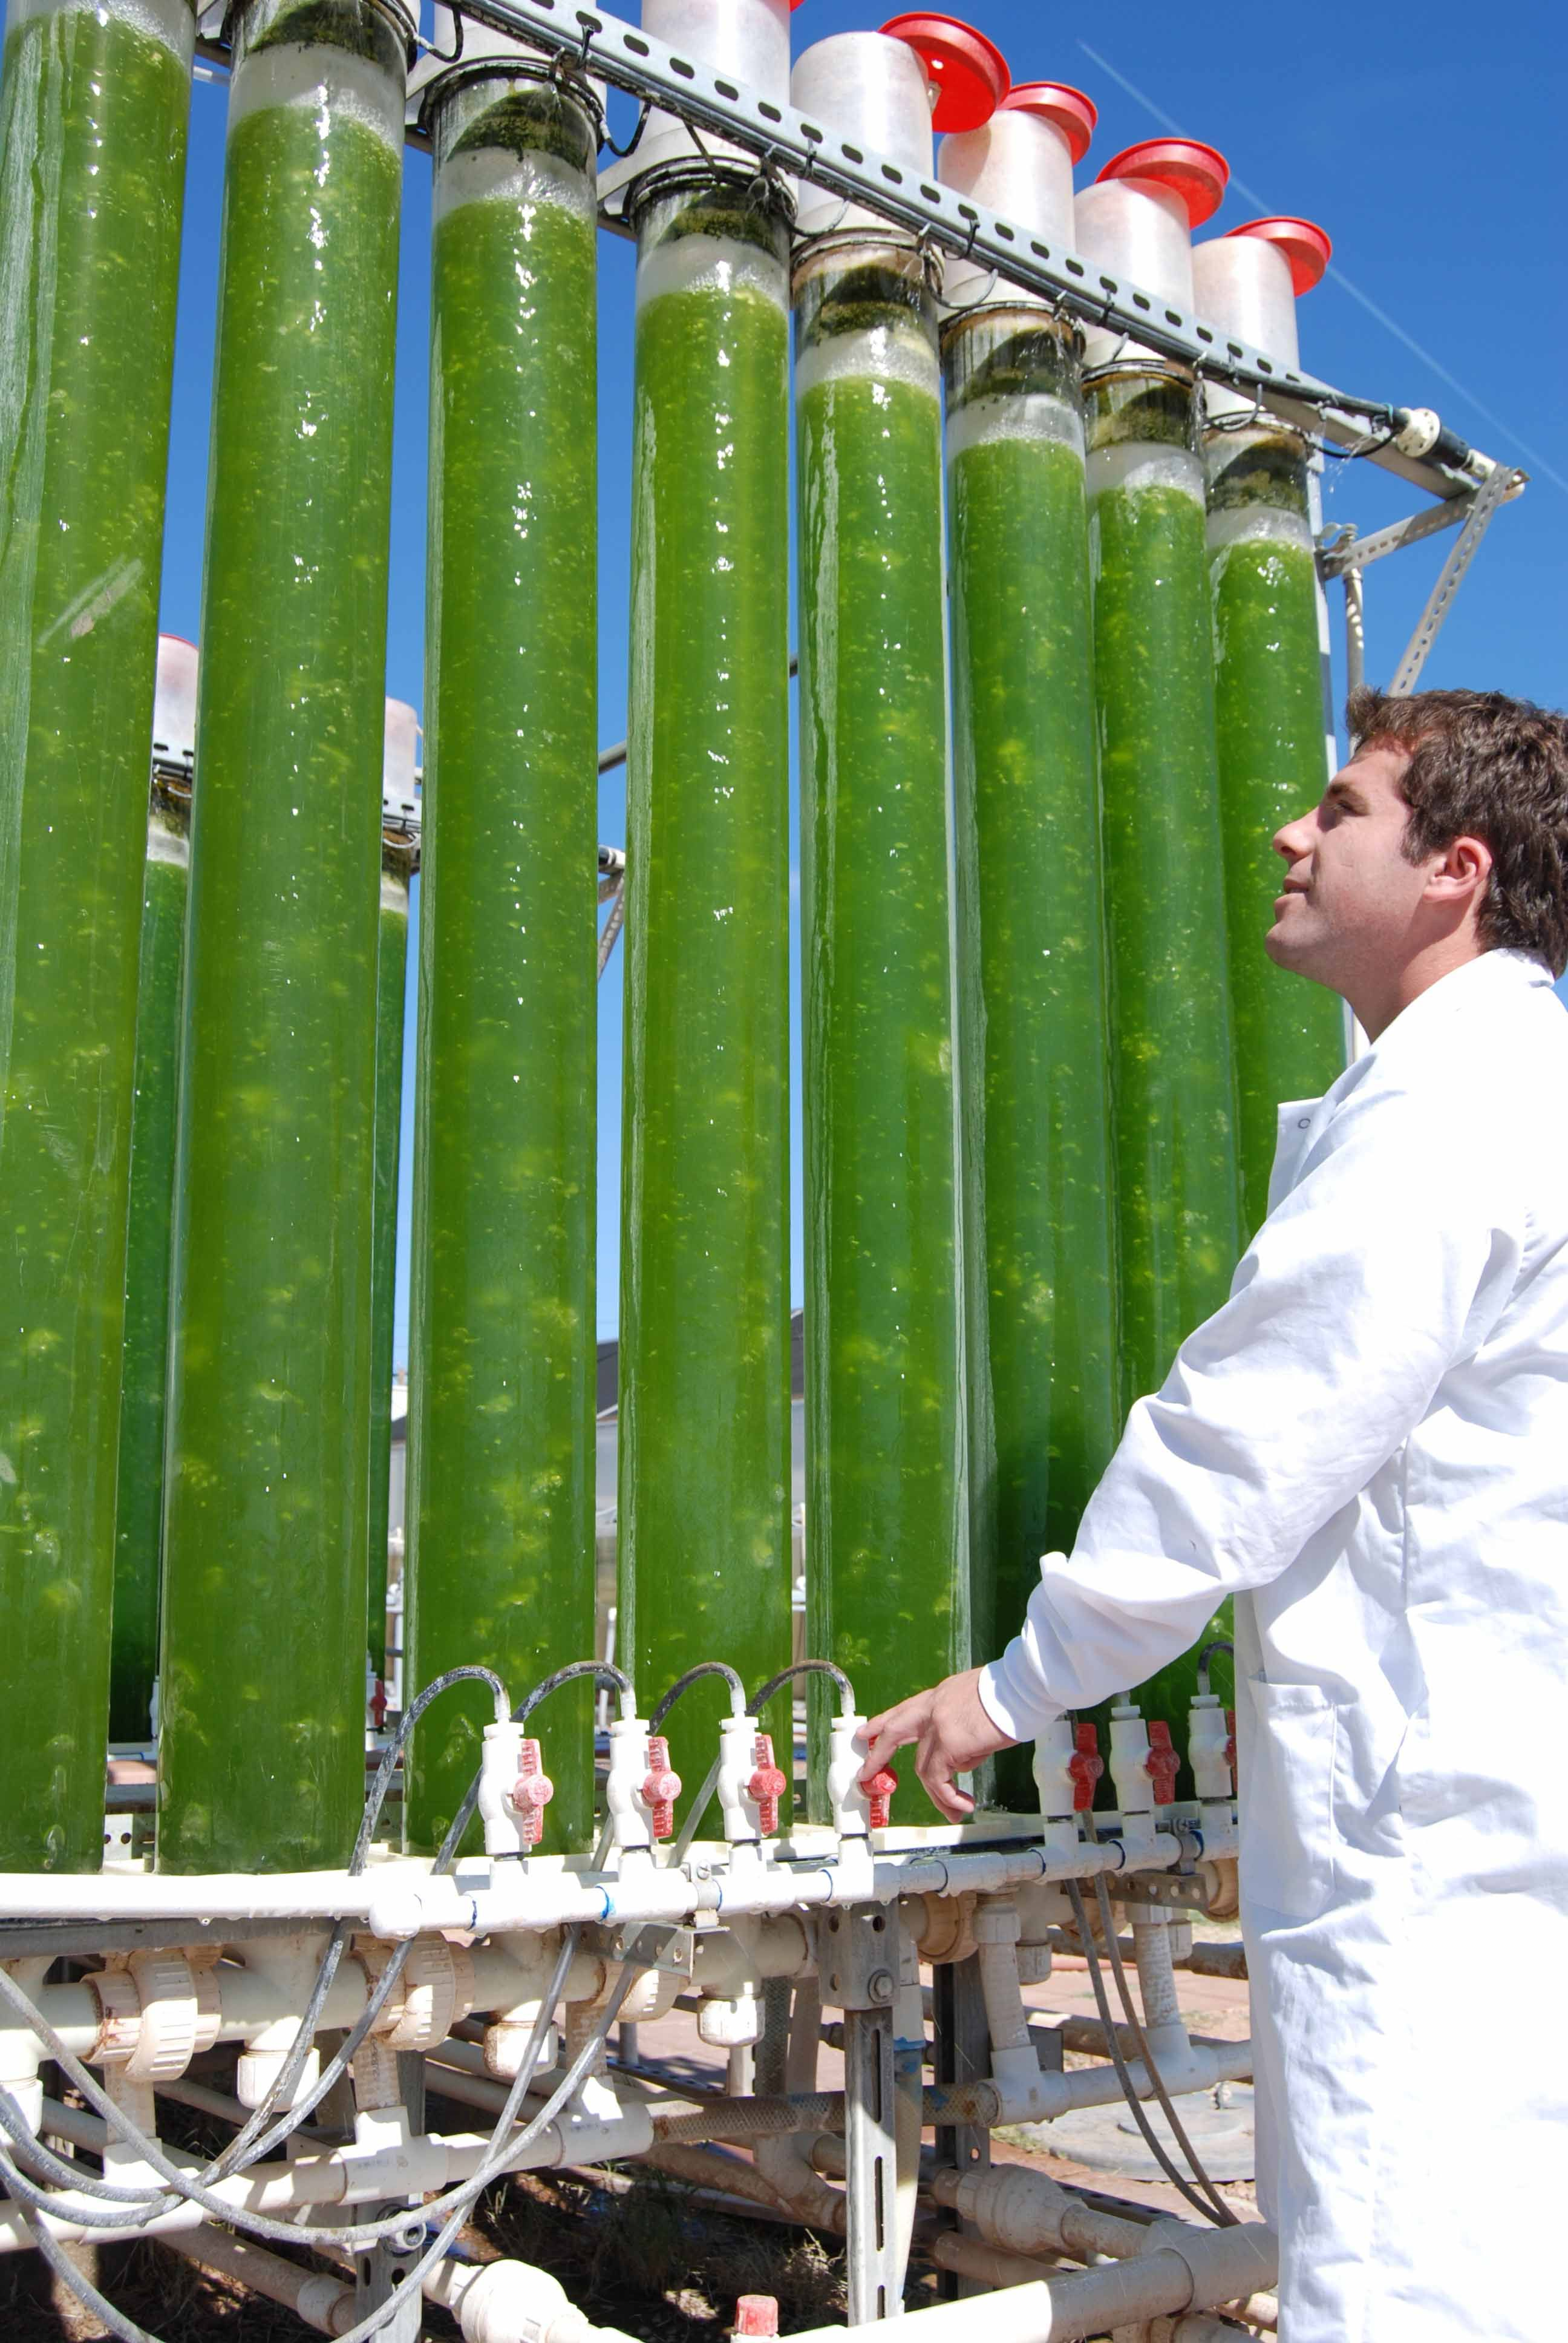 Algae Can Be Grown And Turned Into Biofuel An Ethanol